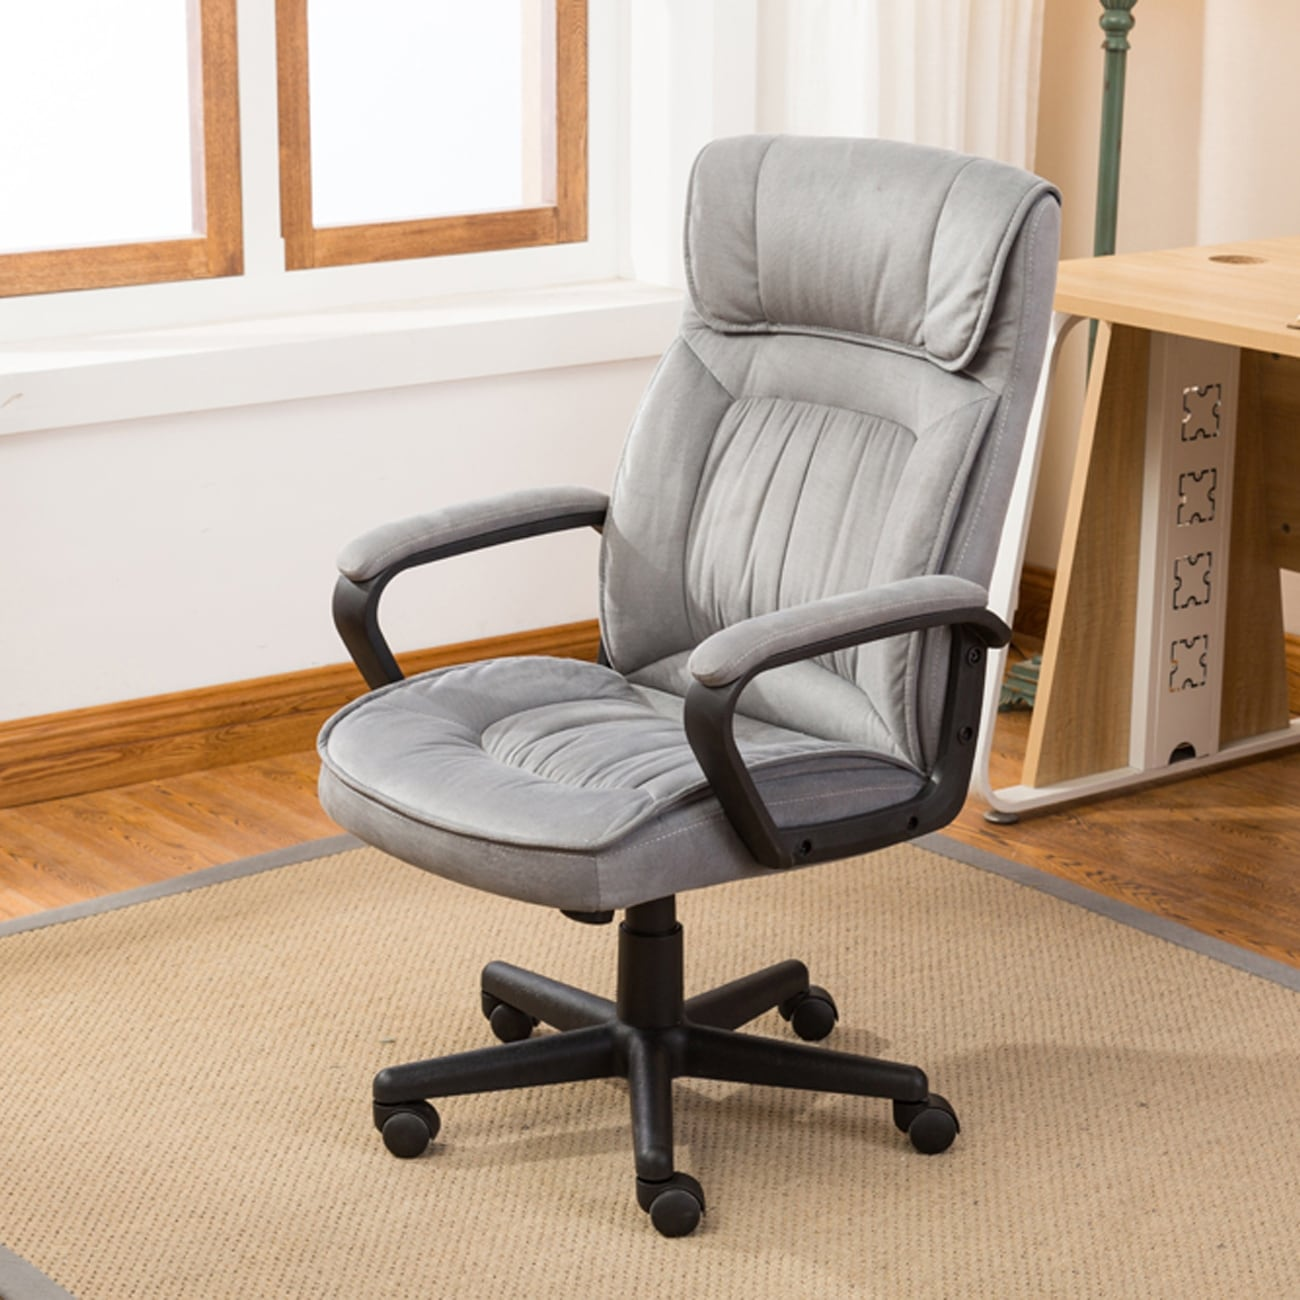 High Back Gray Microfiber Upholstered Contemporary Office Chair home office